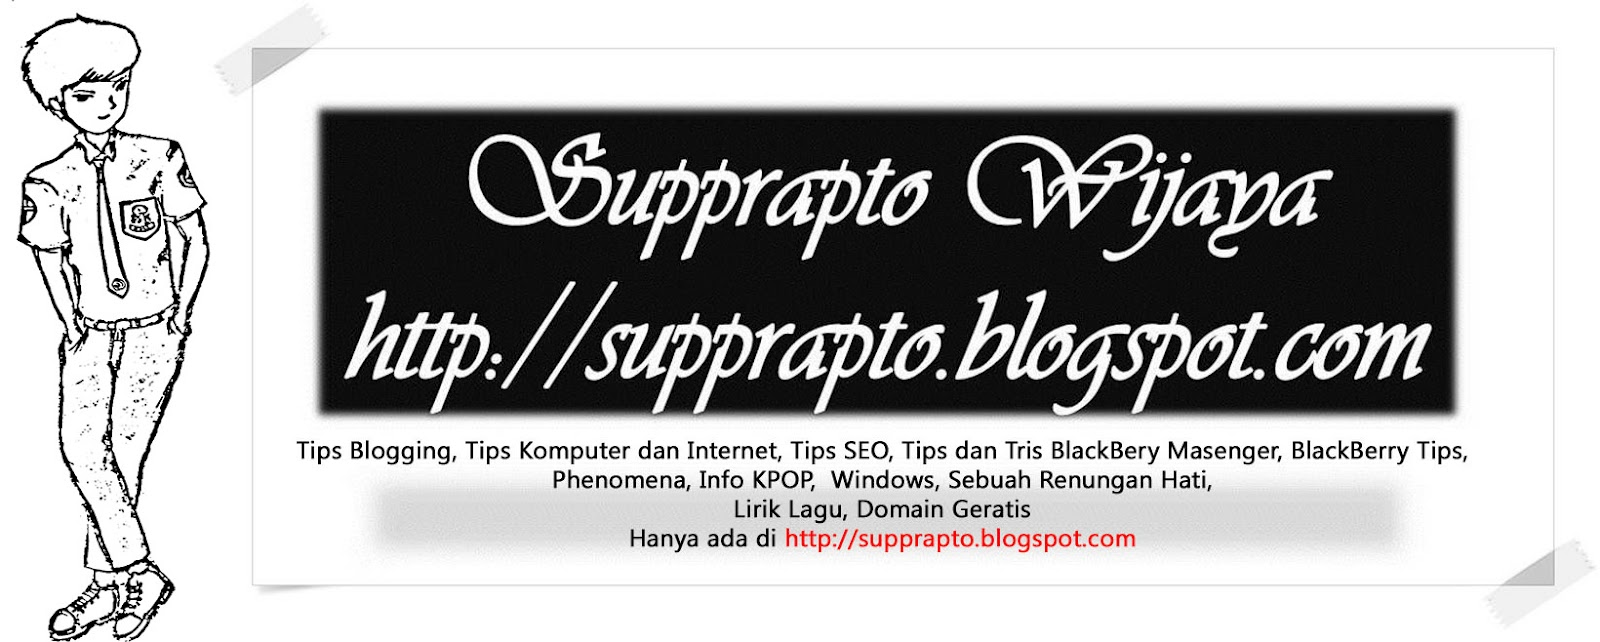 http://supprapto.blogspot.com